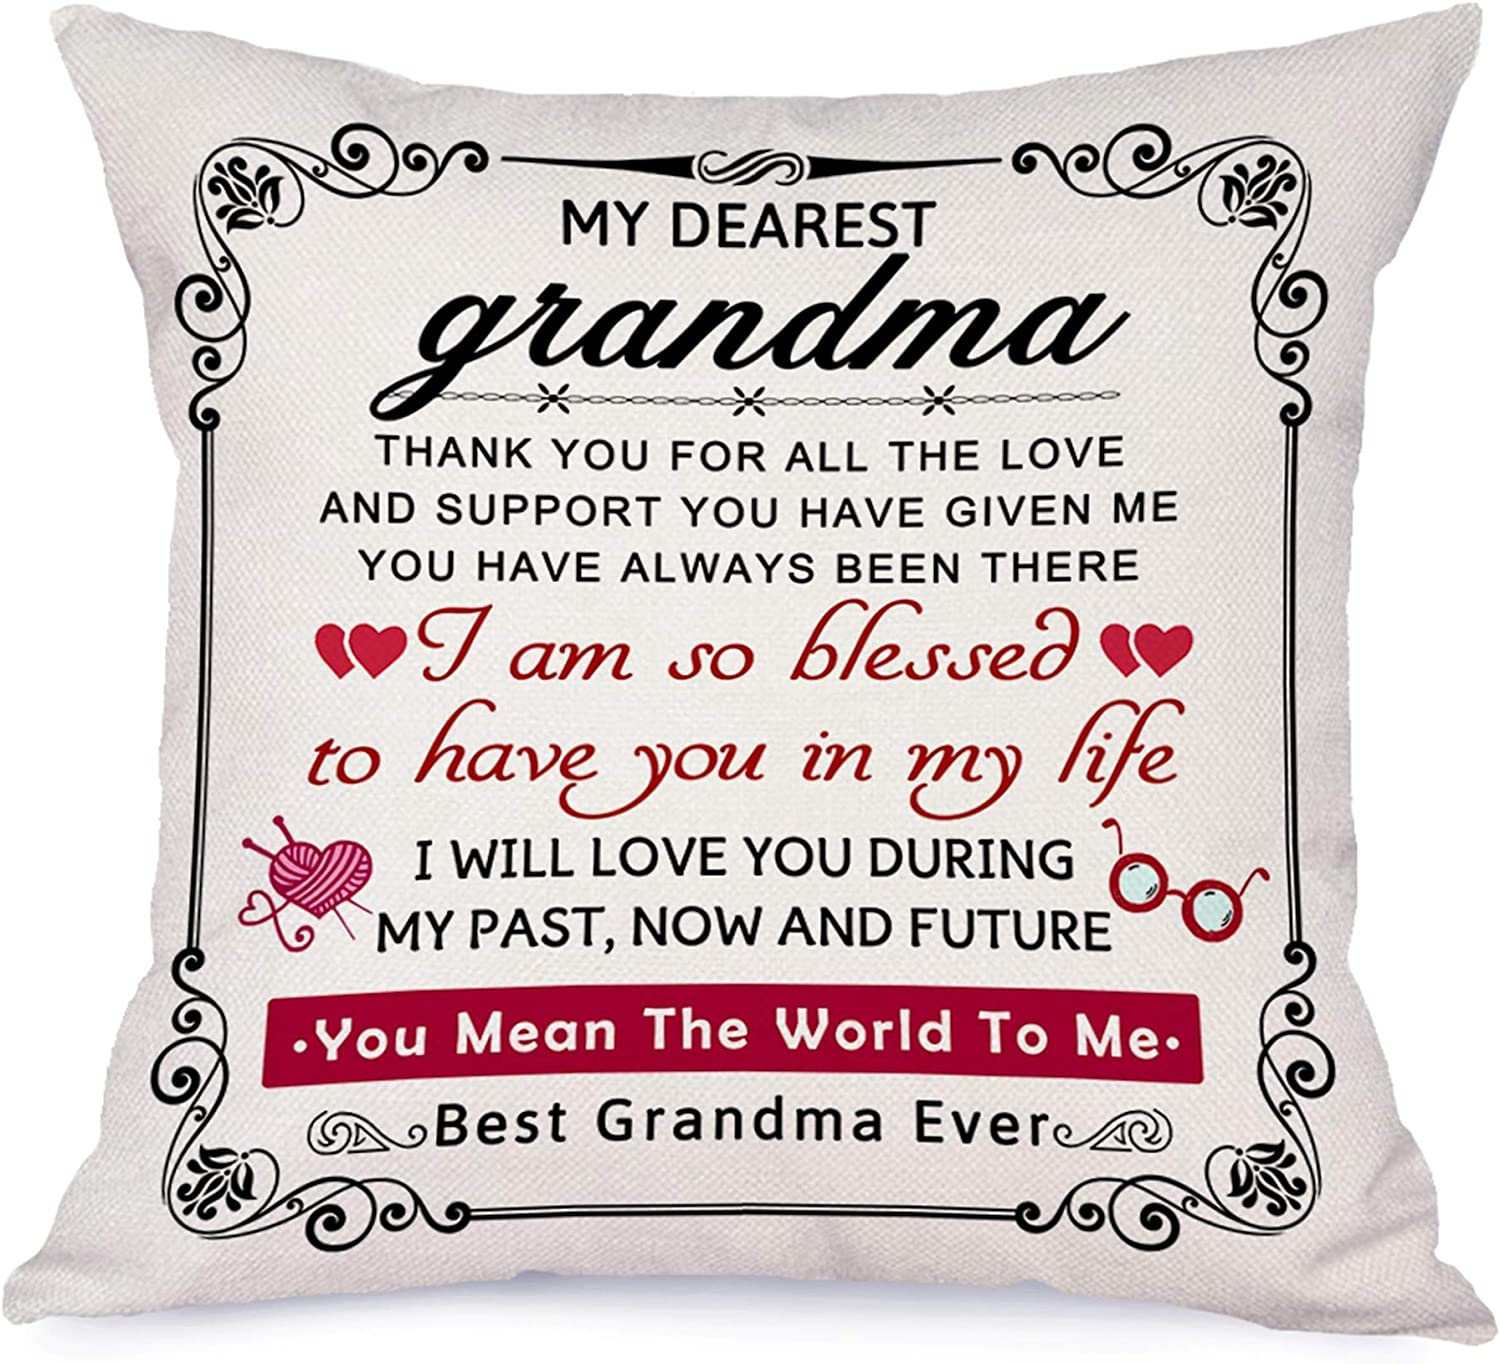 Amazon Com Bonsai Tree My Dearest Grandma Pillow Covers Love Quotes From Grandchildren Pillow Cases You Mean The World To Me Linen Throw Pillow Covers Christmas Birthday Gifts For Grandmother 18 X18 Home